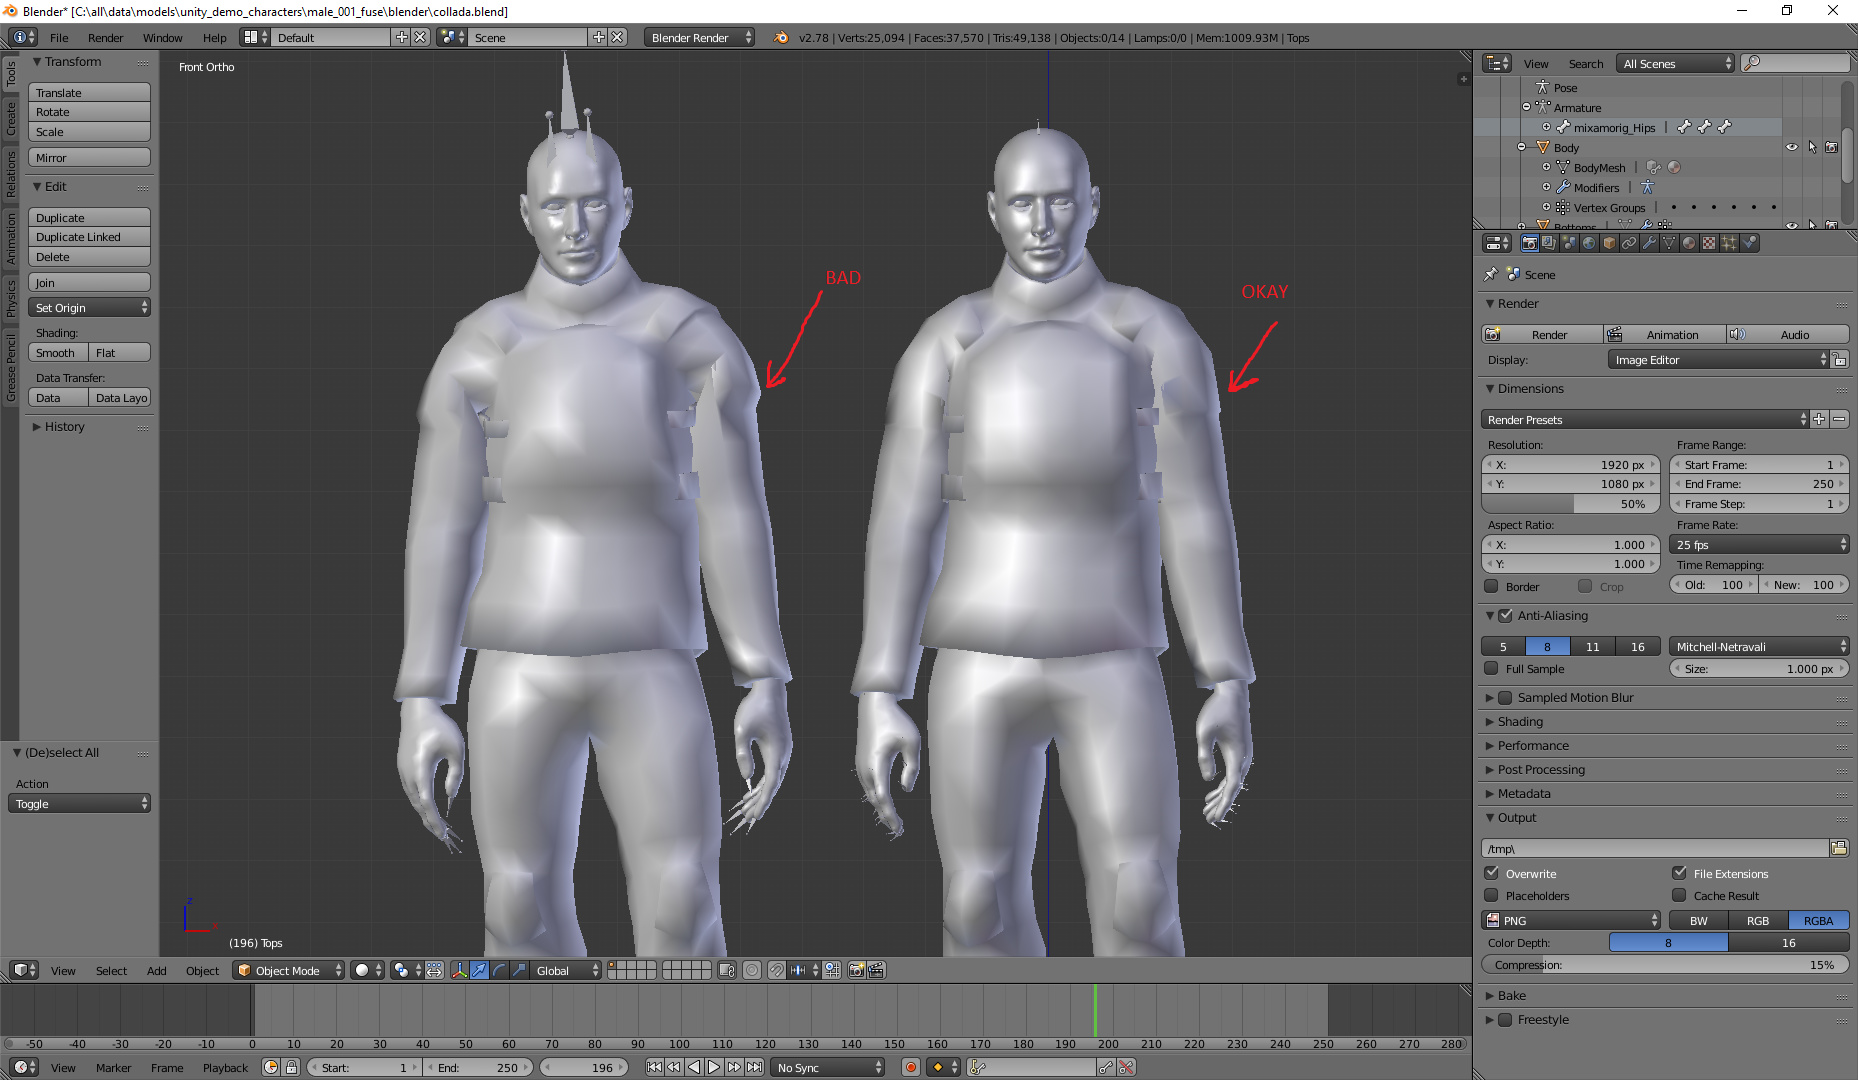 Import from Mixamo to Blender in  FBX format - mesh